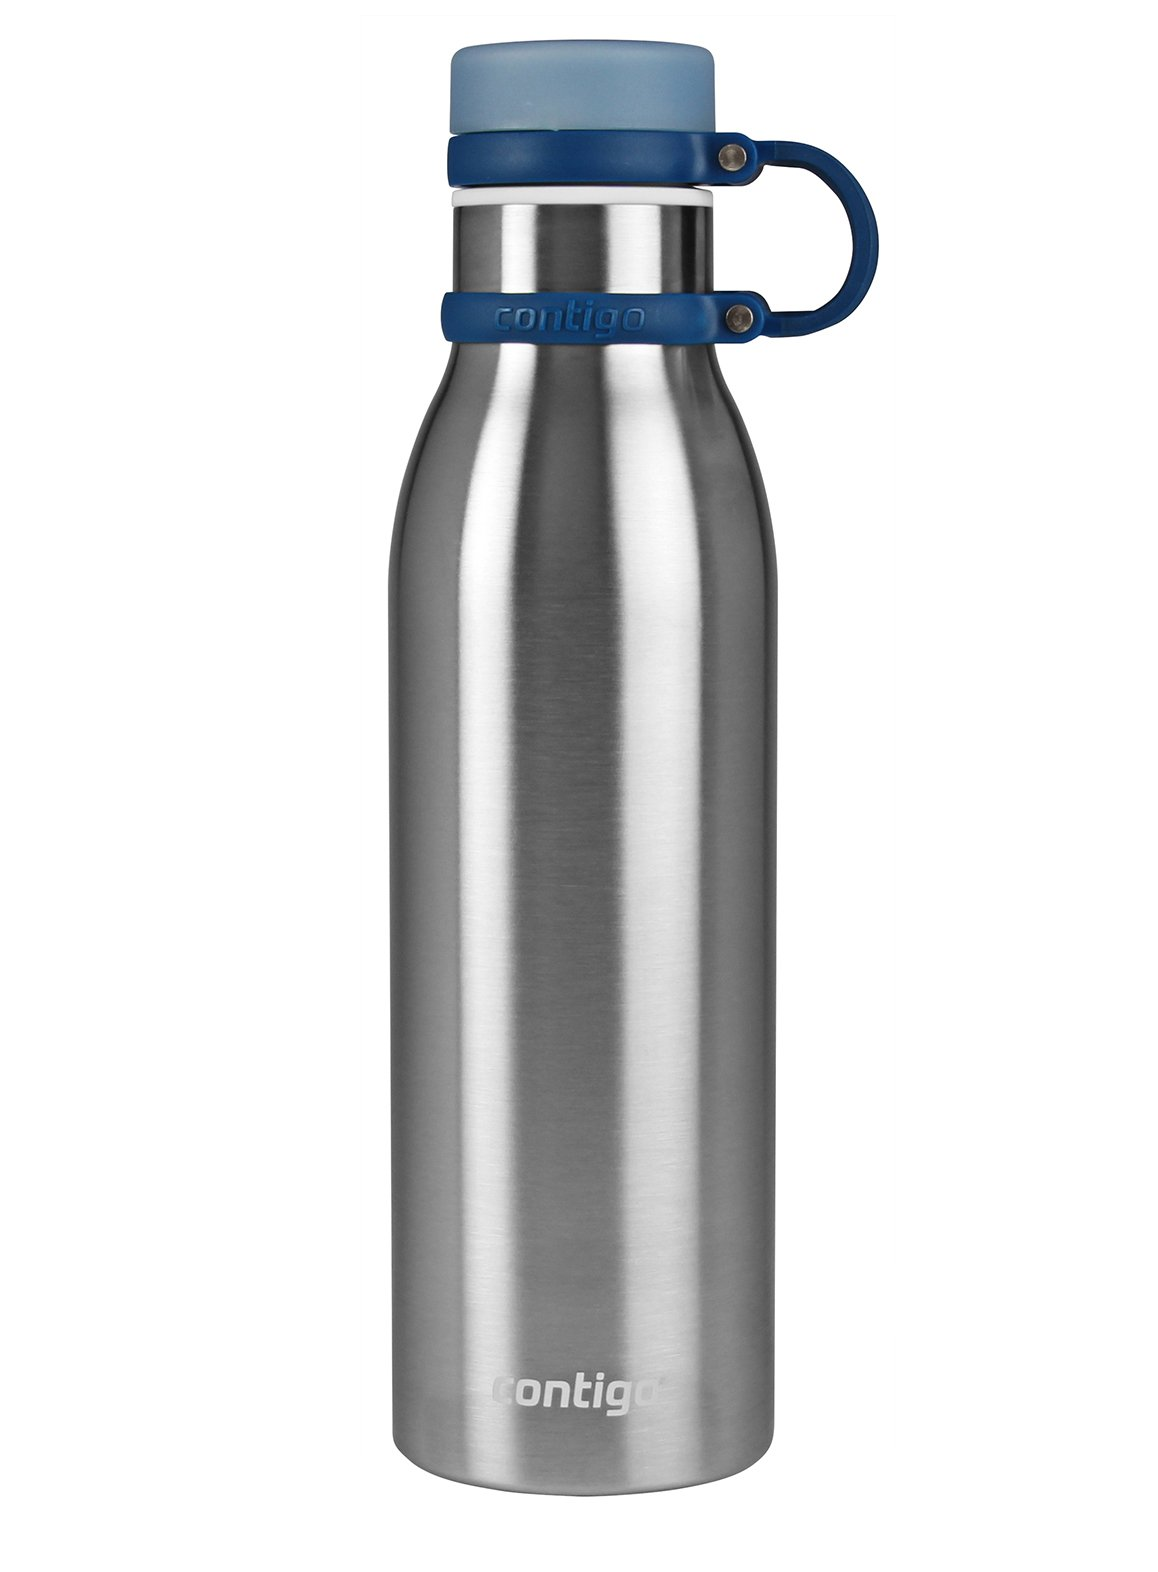 Contigo THERMALOCK Matterhorn Stainless Steel Water Bottle, 20 oz, Stainless Steel with Monaco Accent